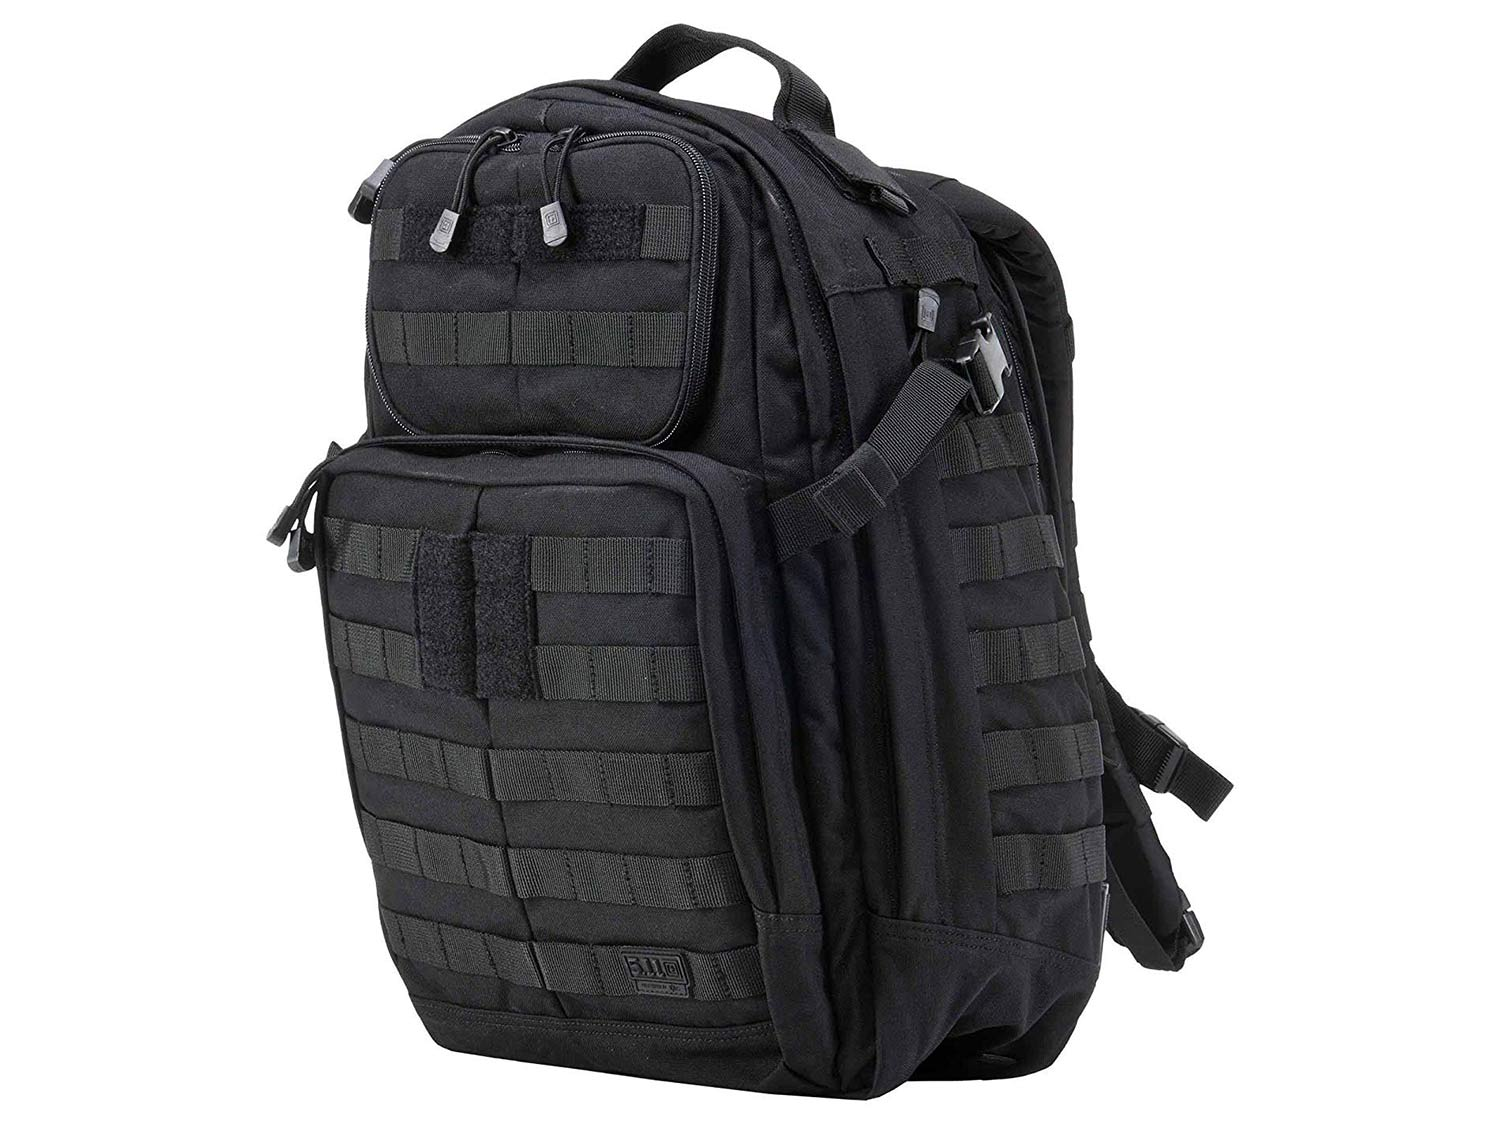 5.11 RUSH24 Tactical Backpack